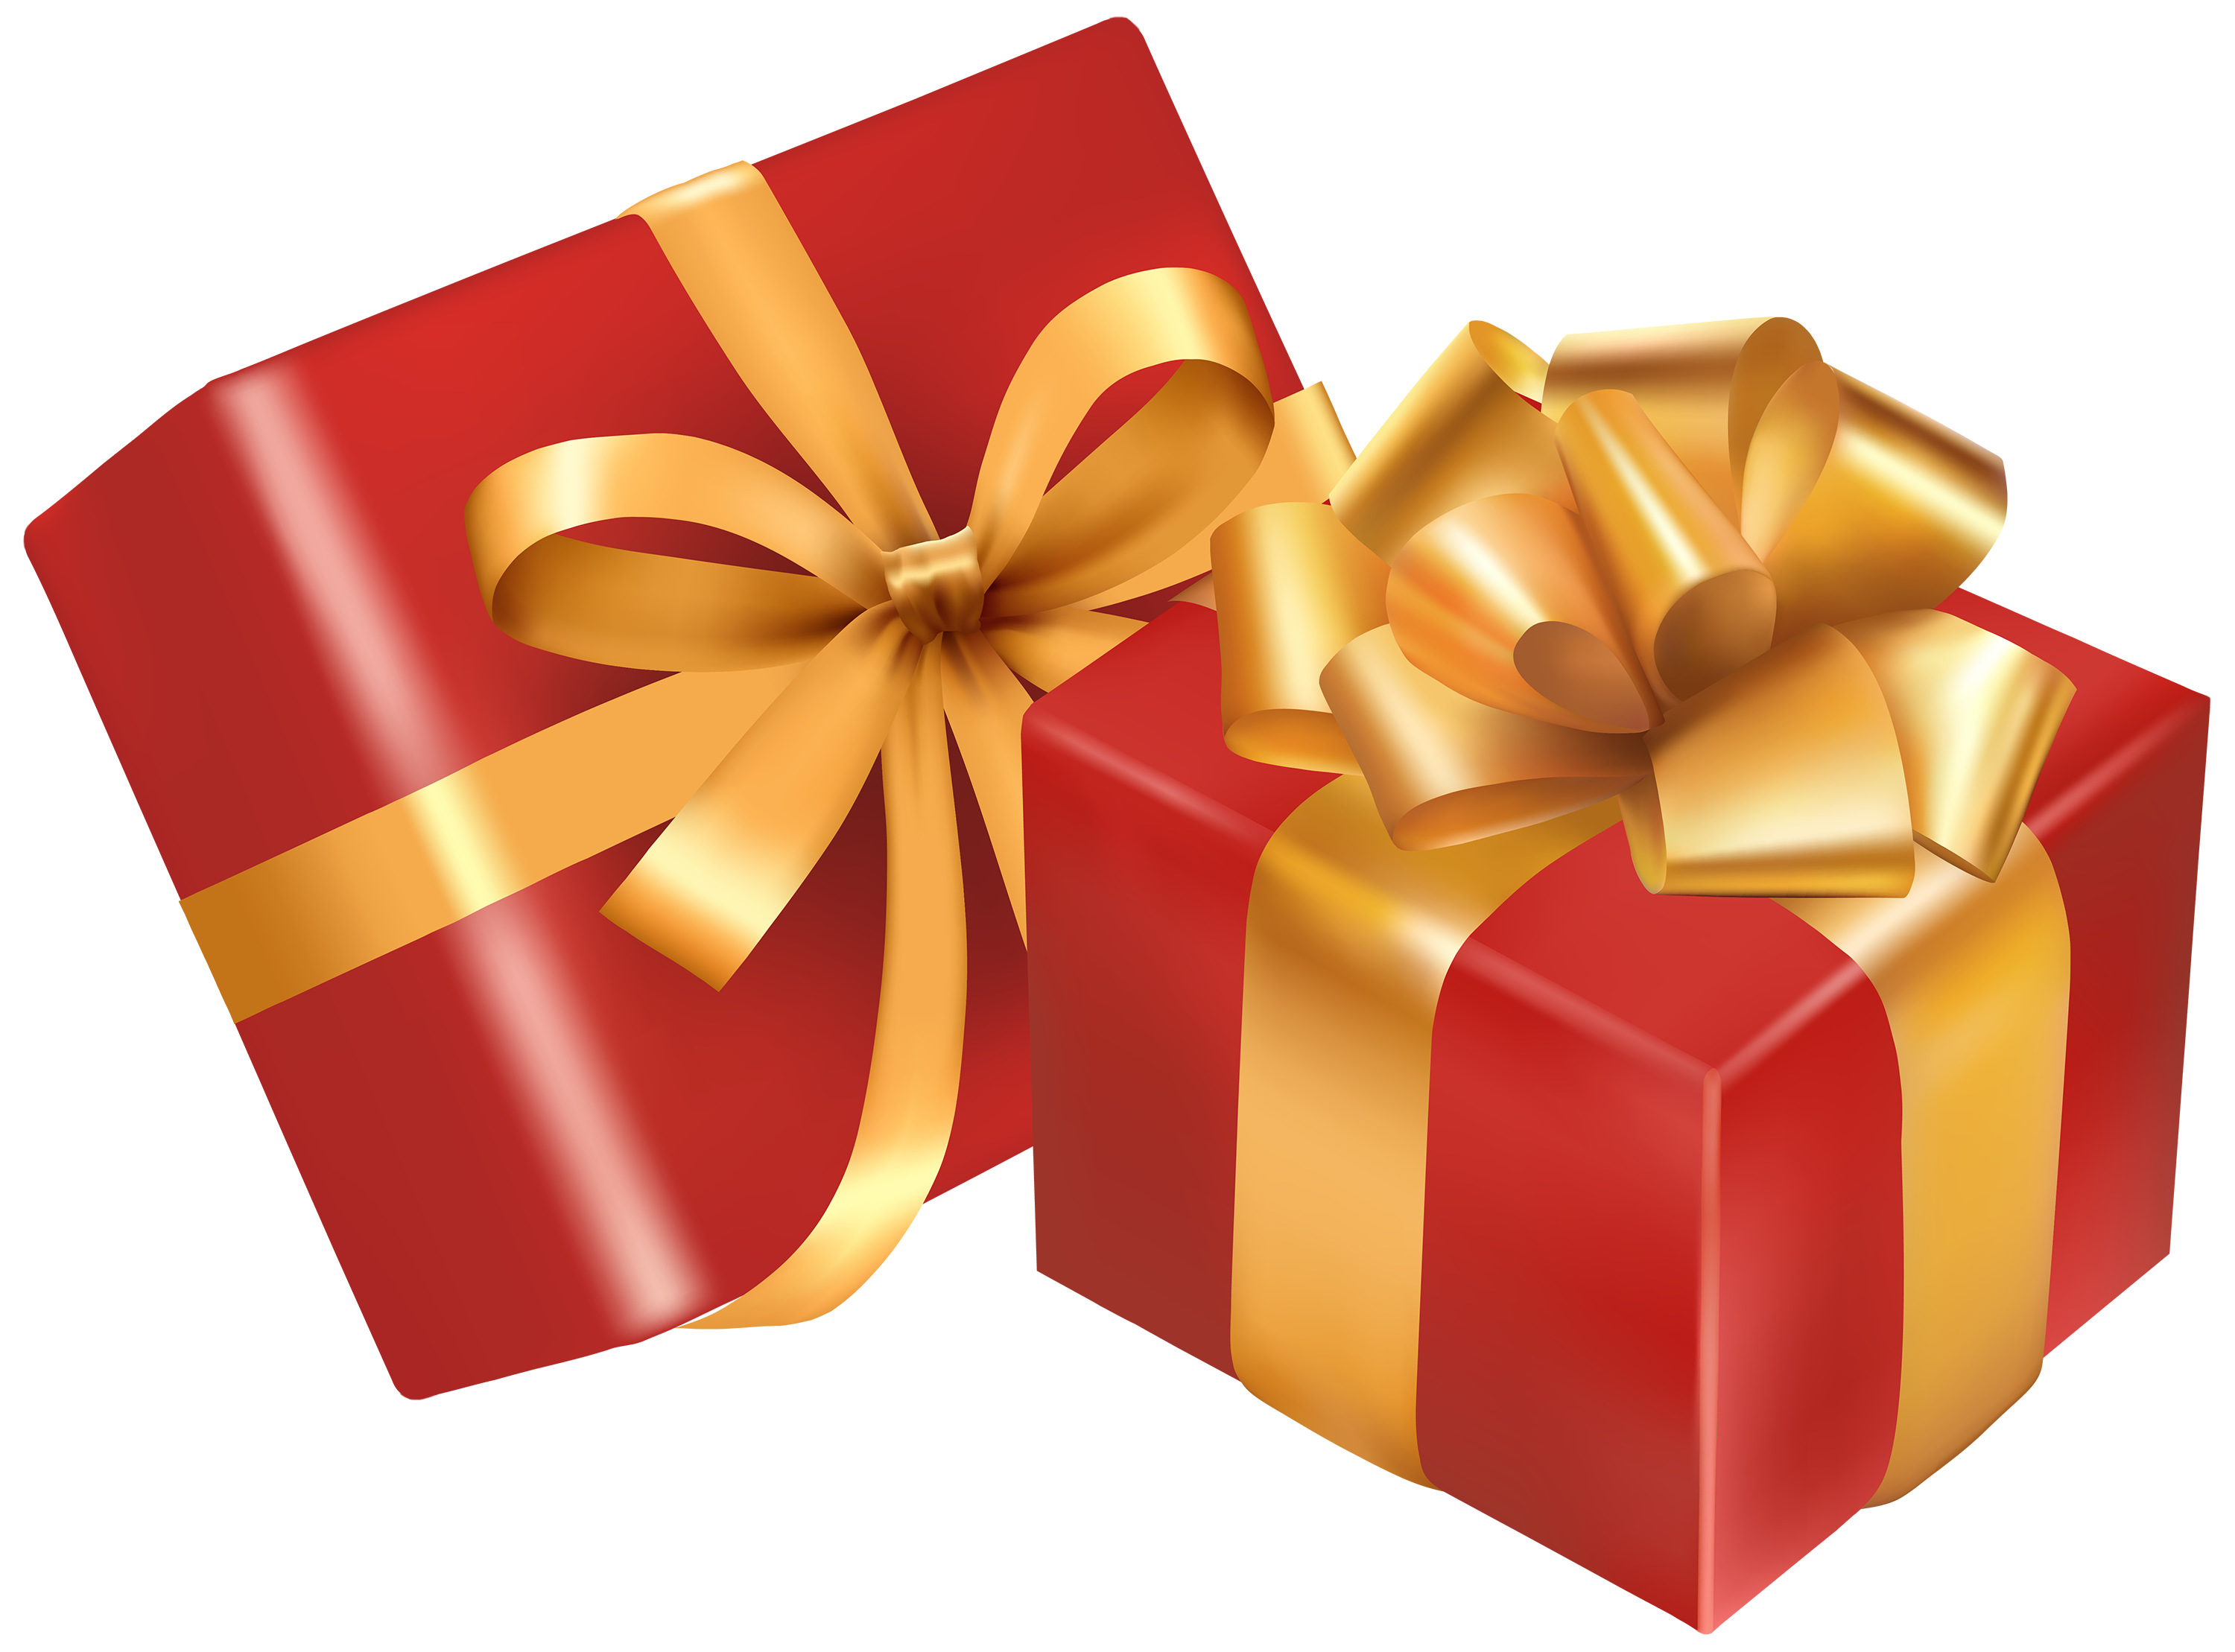 Gift clipart parcel. Two red boxes png